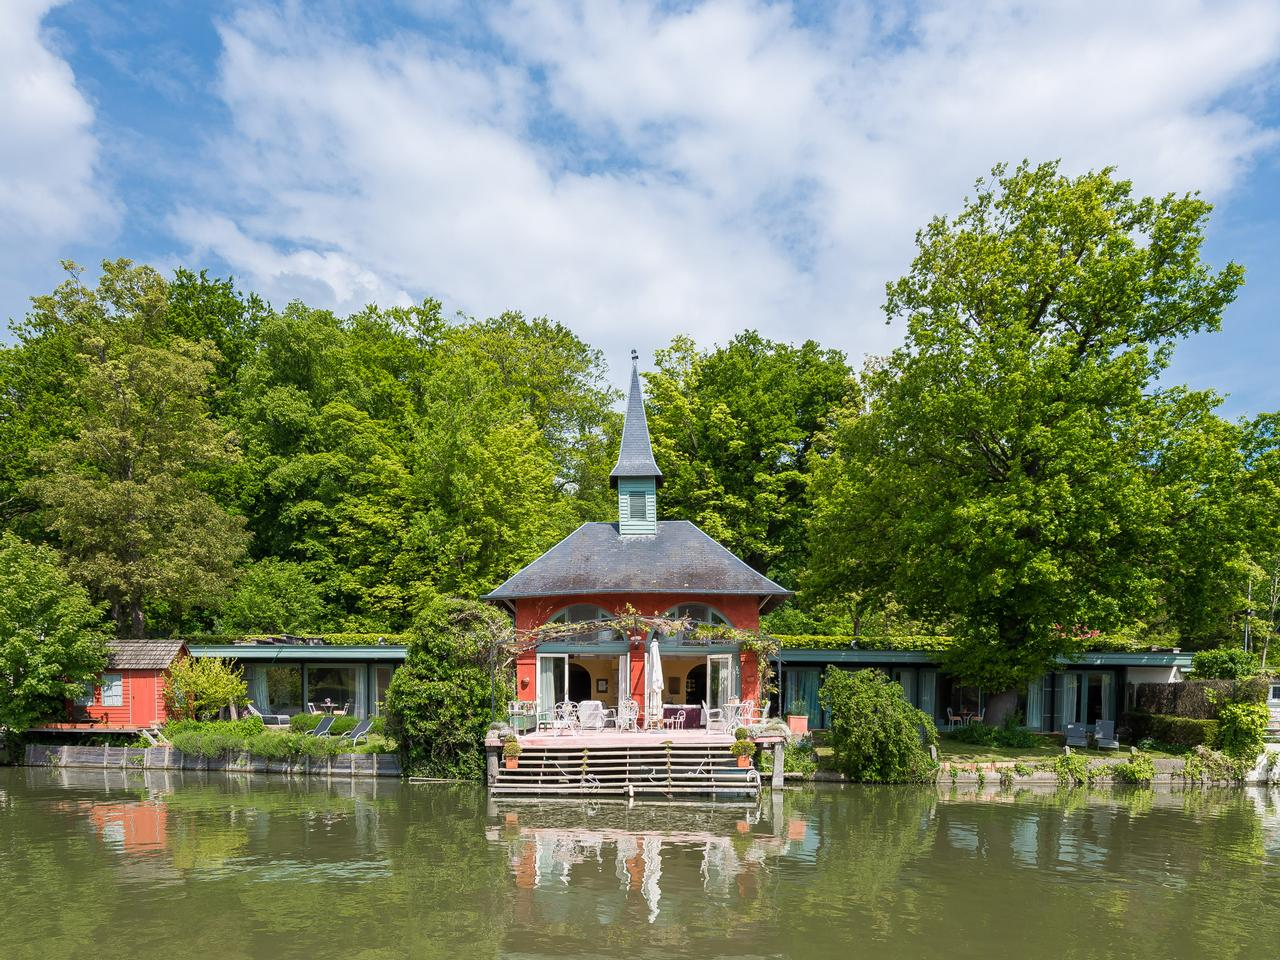 Other Residential for Sale at Genval I Au bord du lac Other Belgium, Other Areas In Belgium, 3090 Belgium